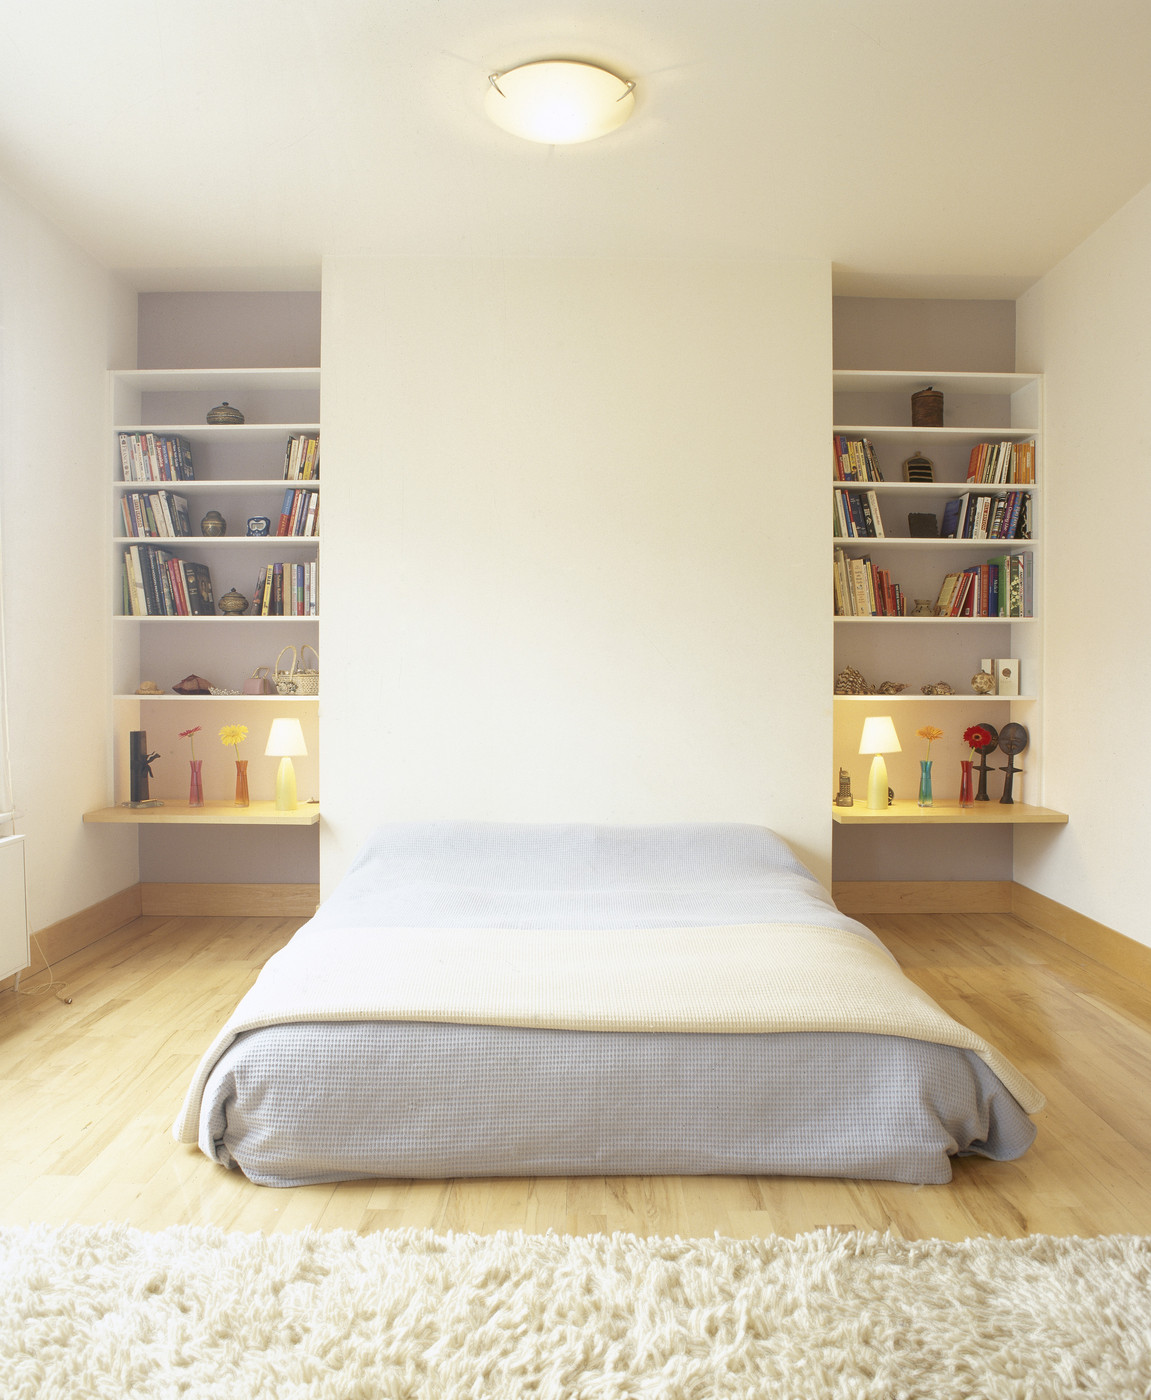 low bed photos design ideas remodel and decor lonny